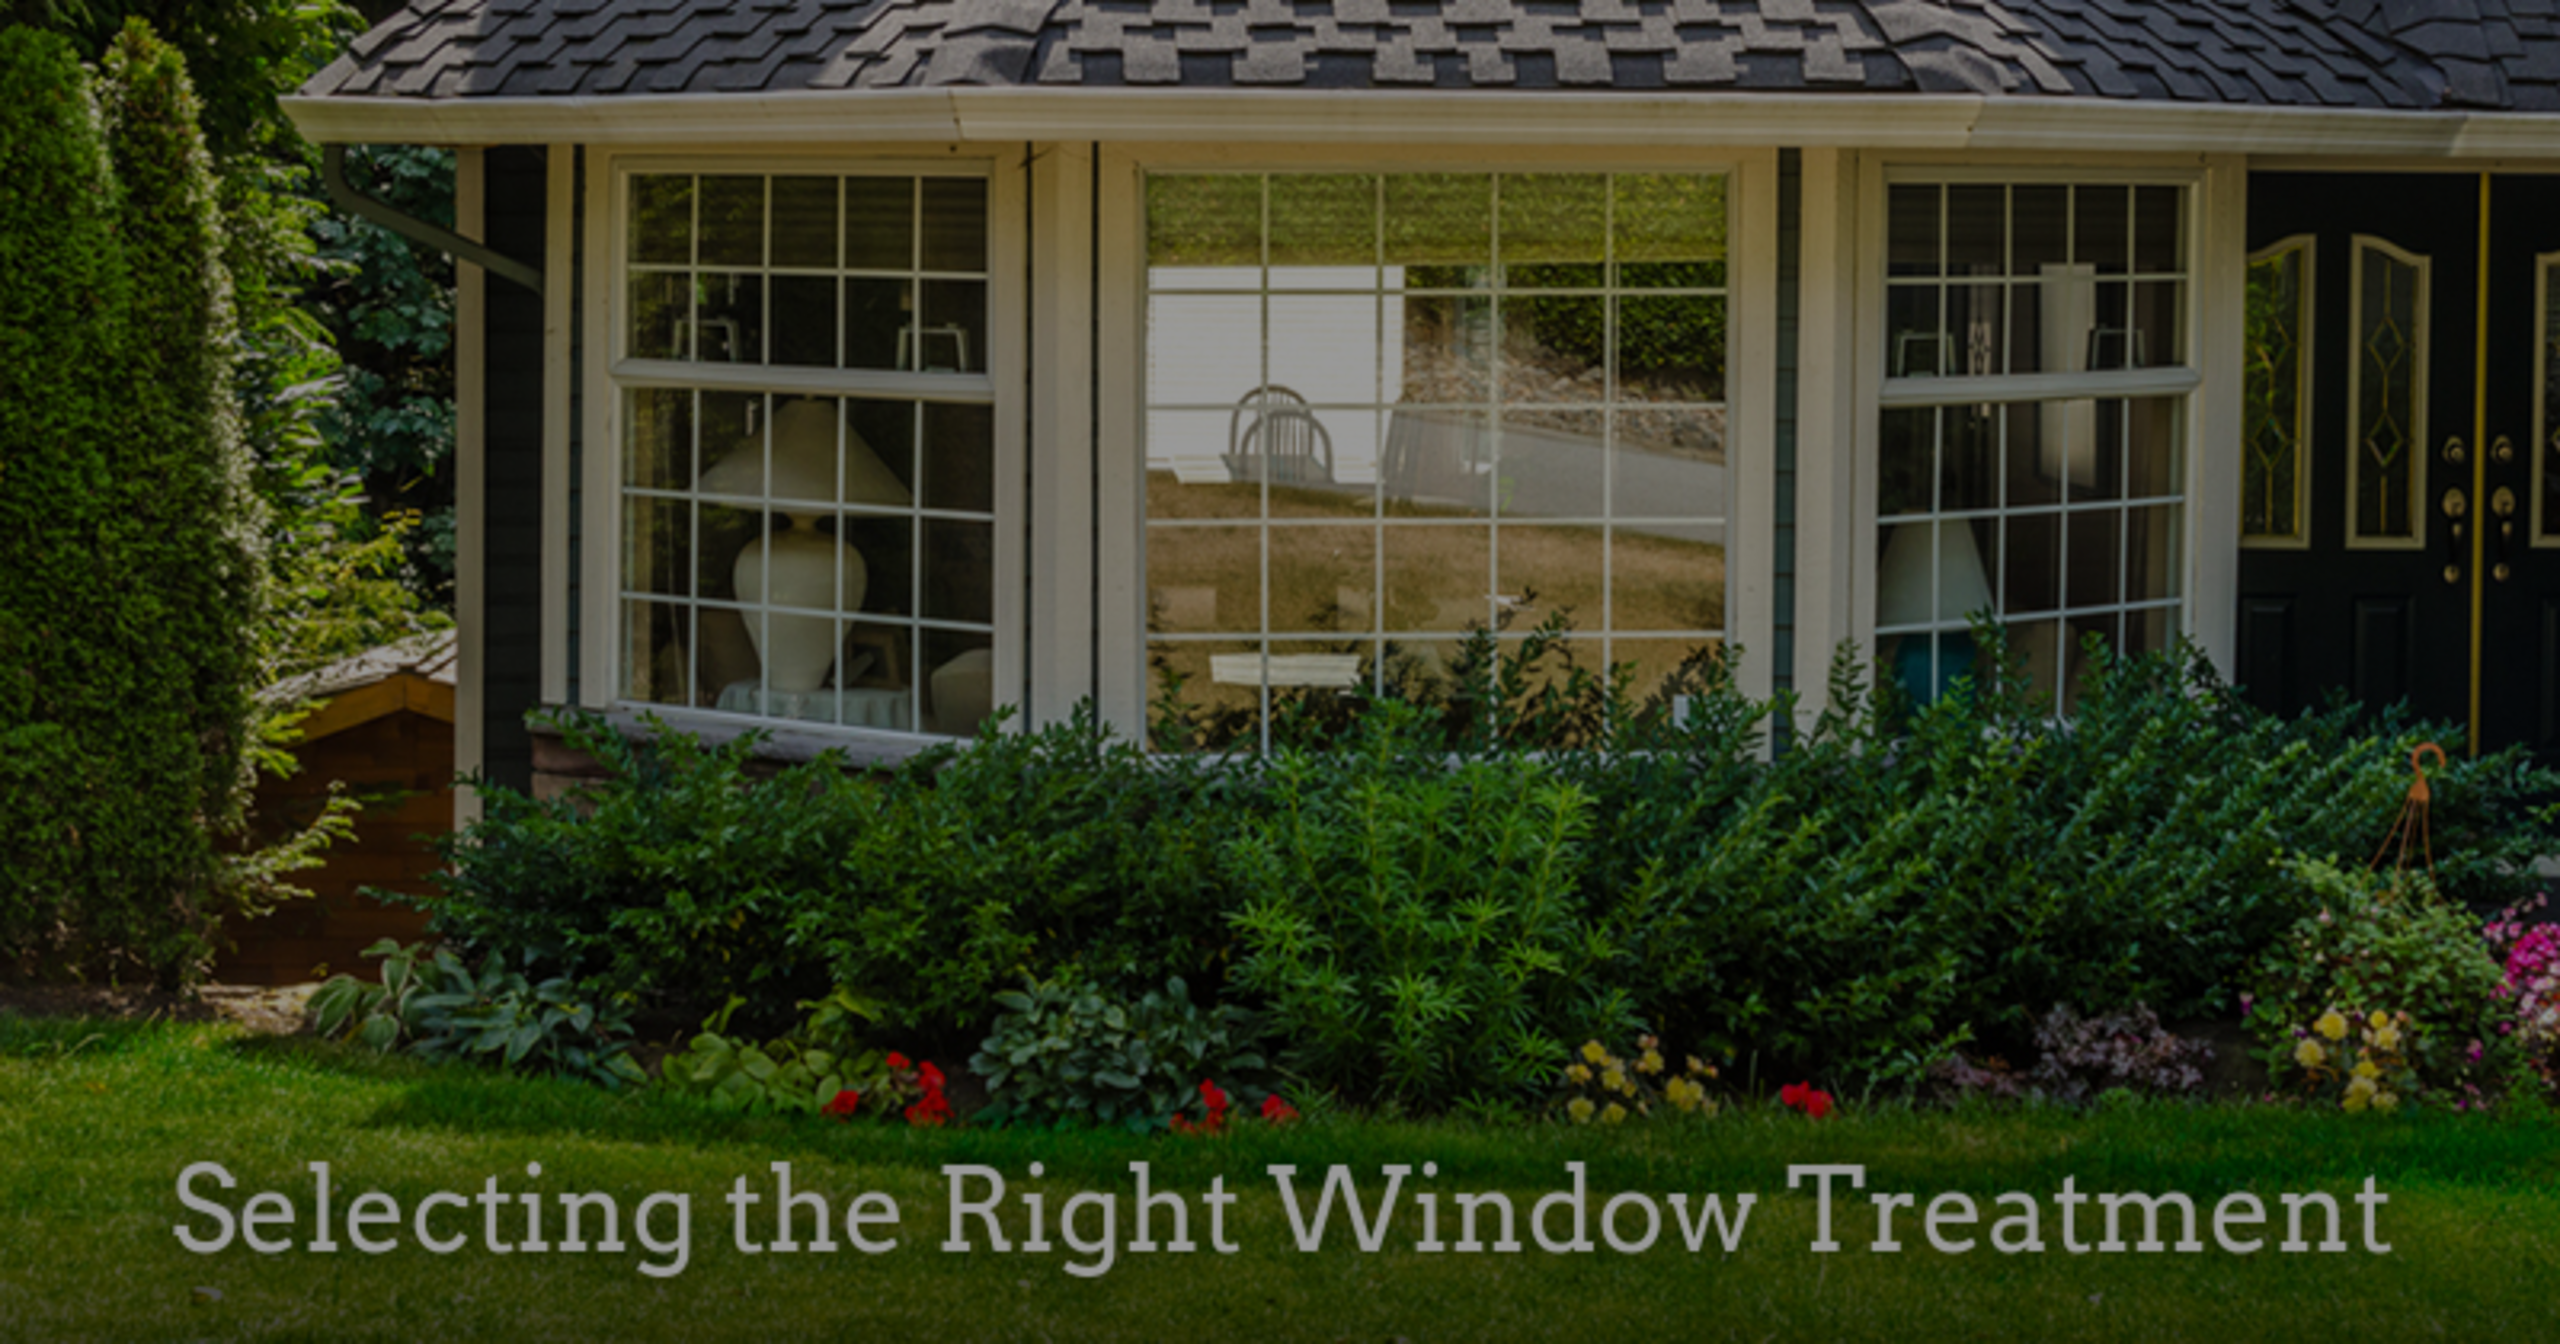 Selecting the Right Window Treatment